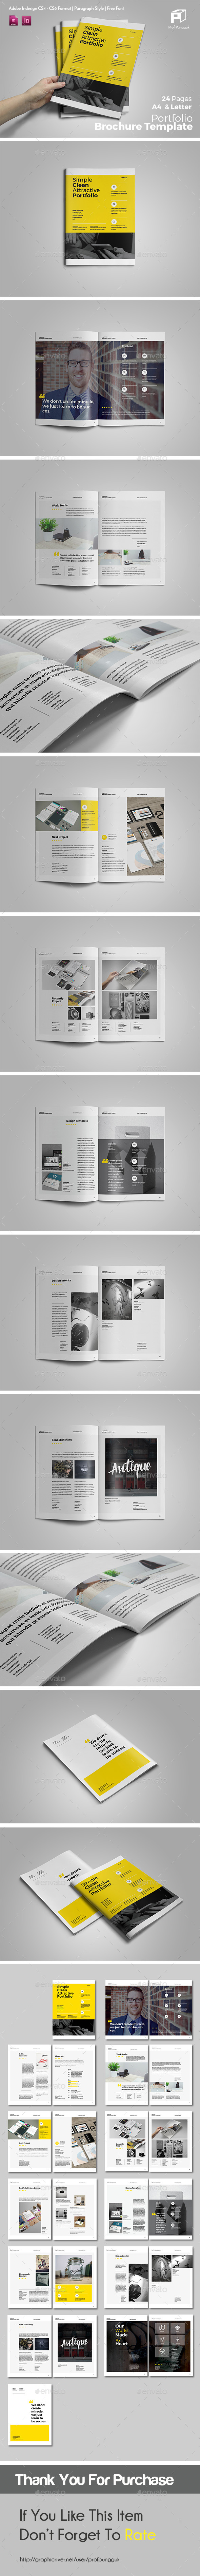 Clean Potrait Multipurpose Brochure Vol.2 - Portfolio Brochures